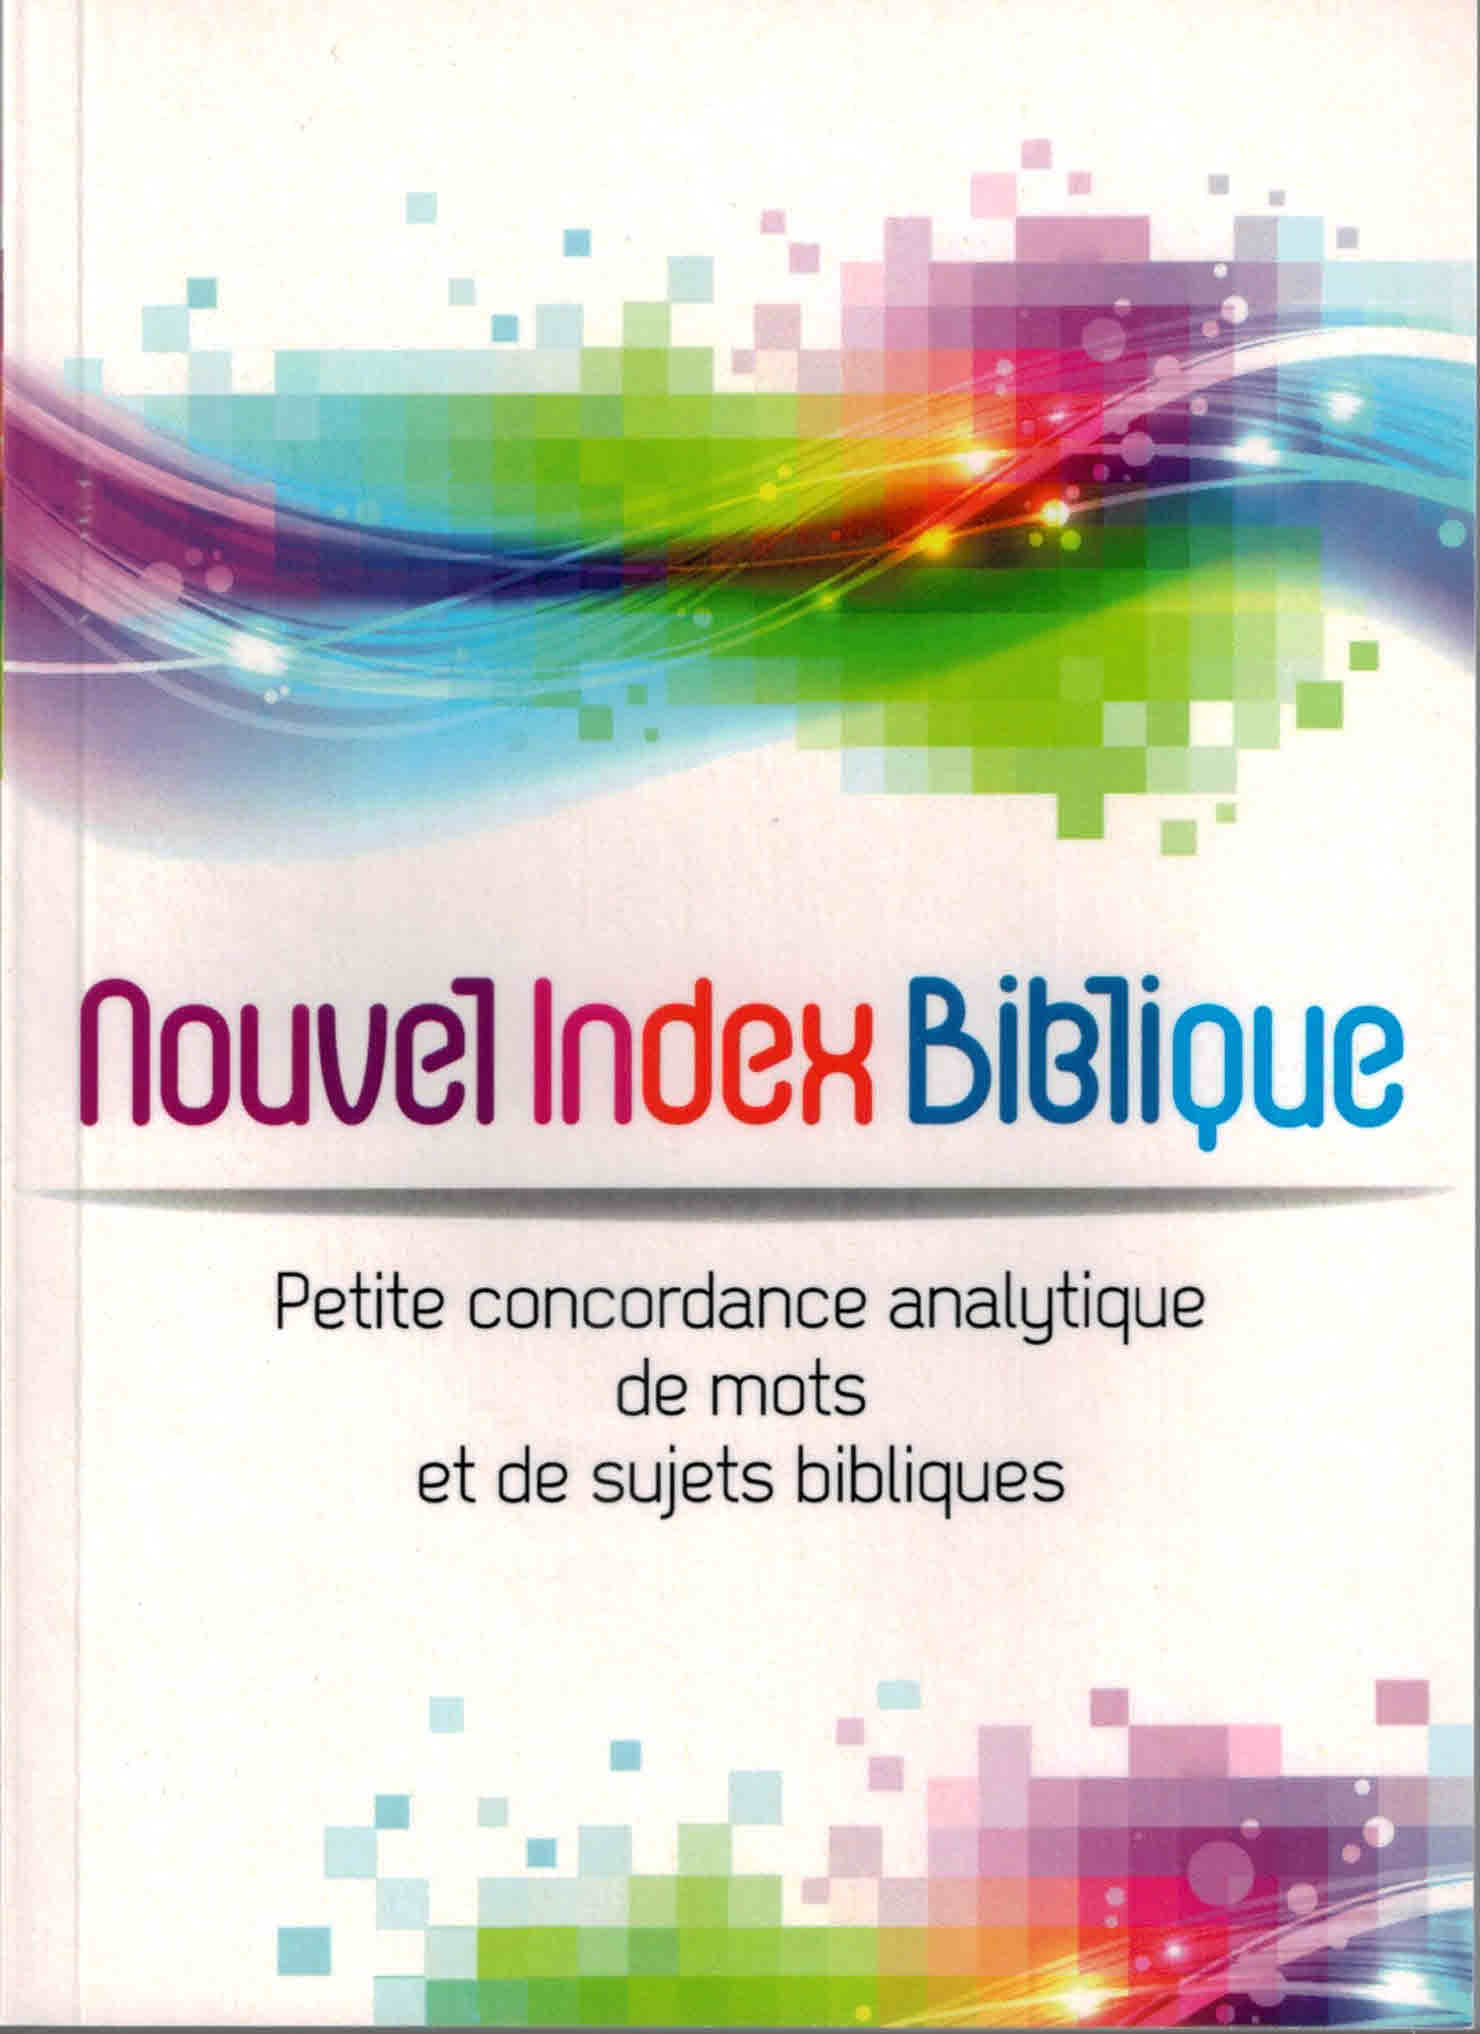 Nouvel index biblique